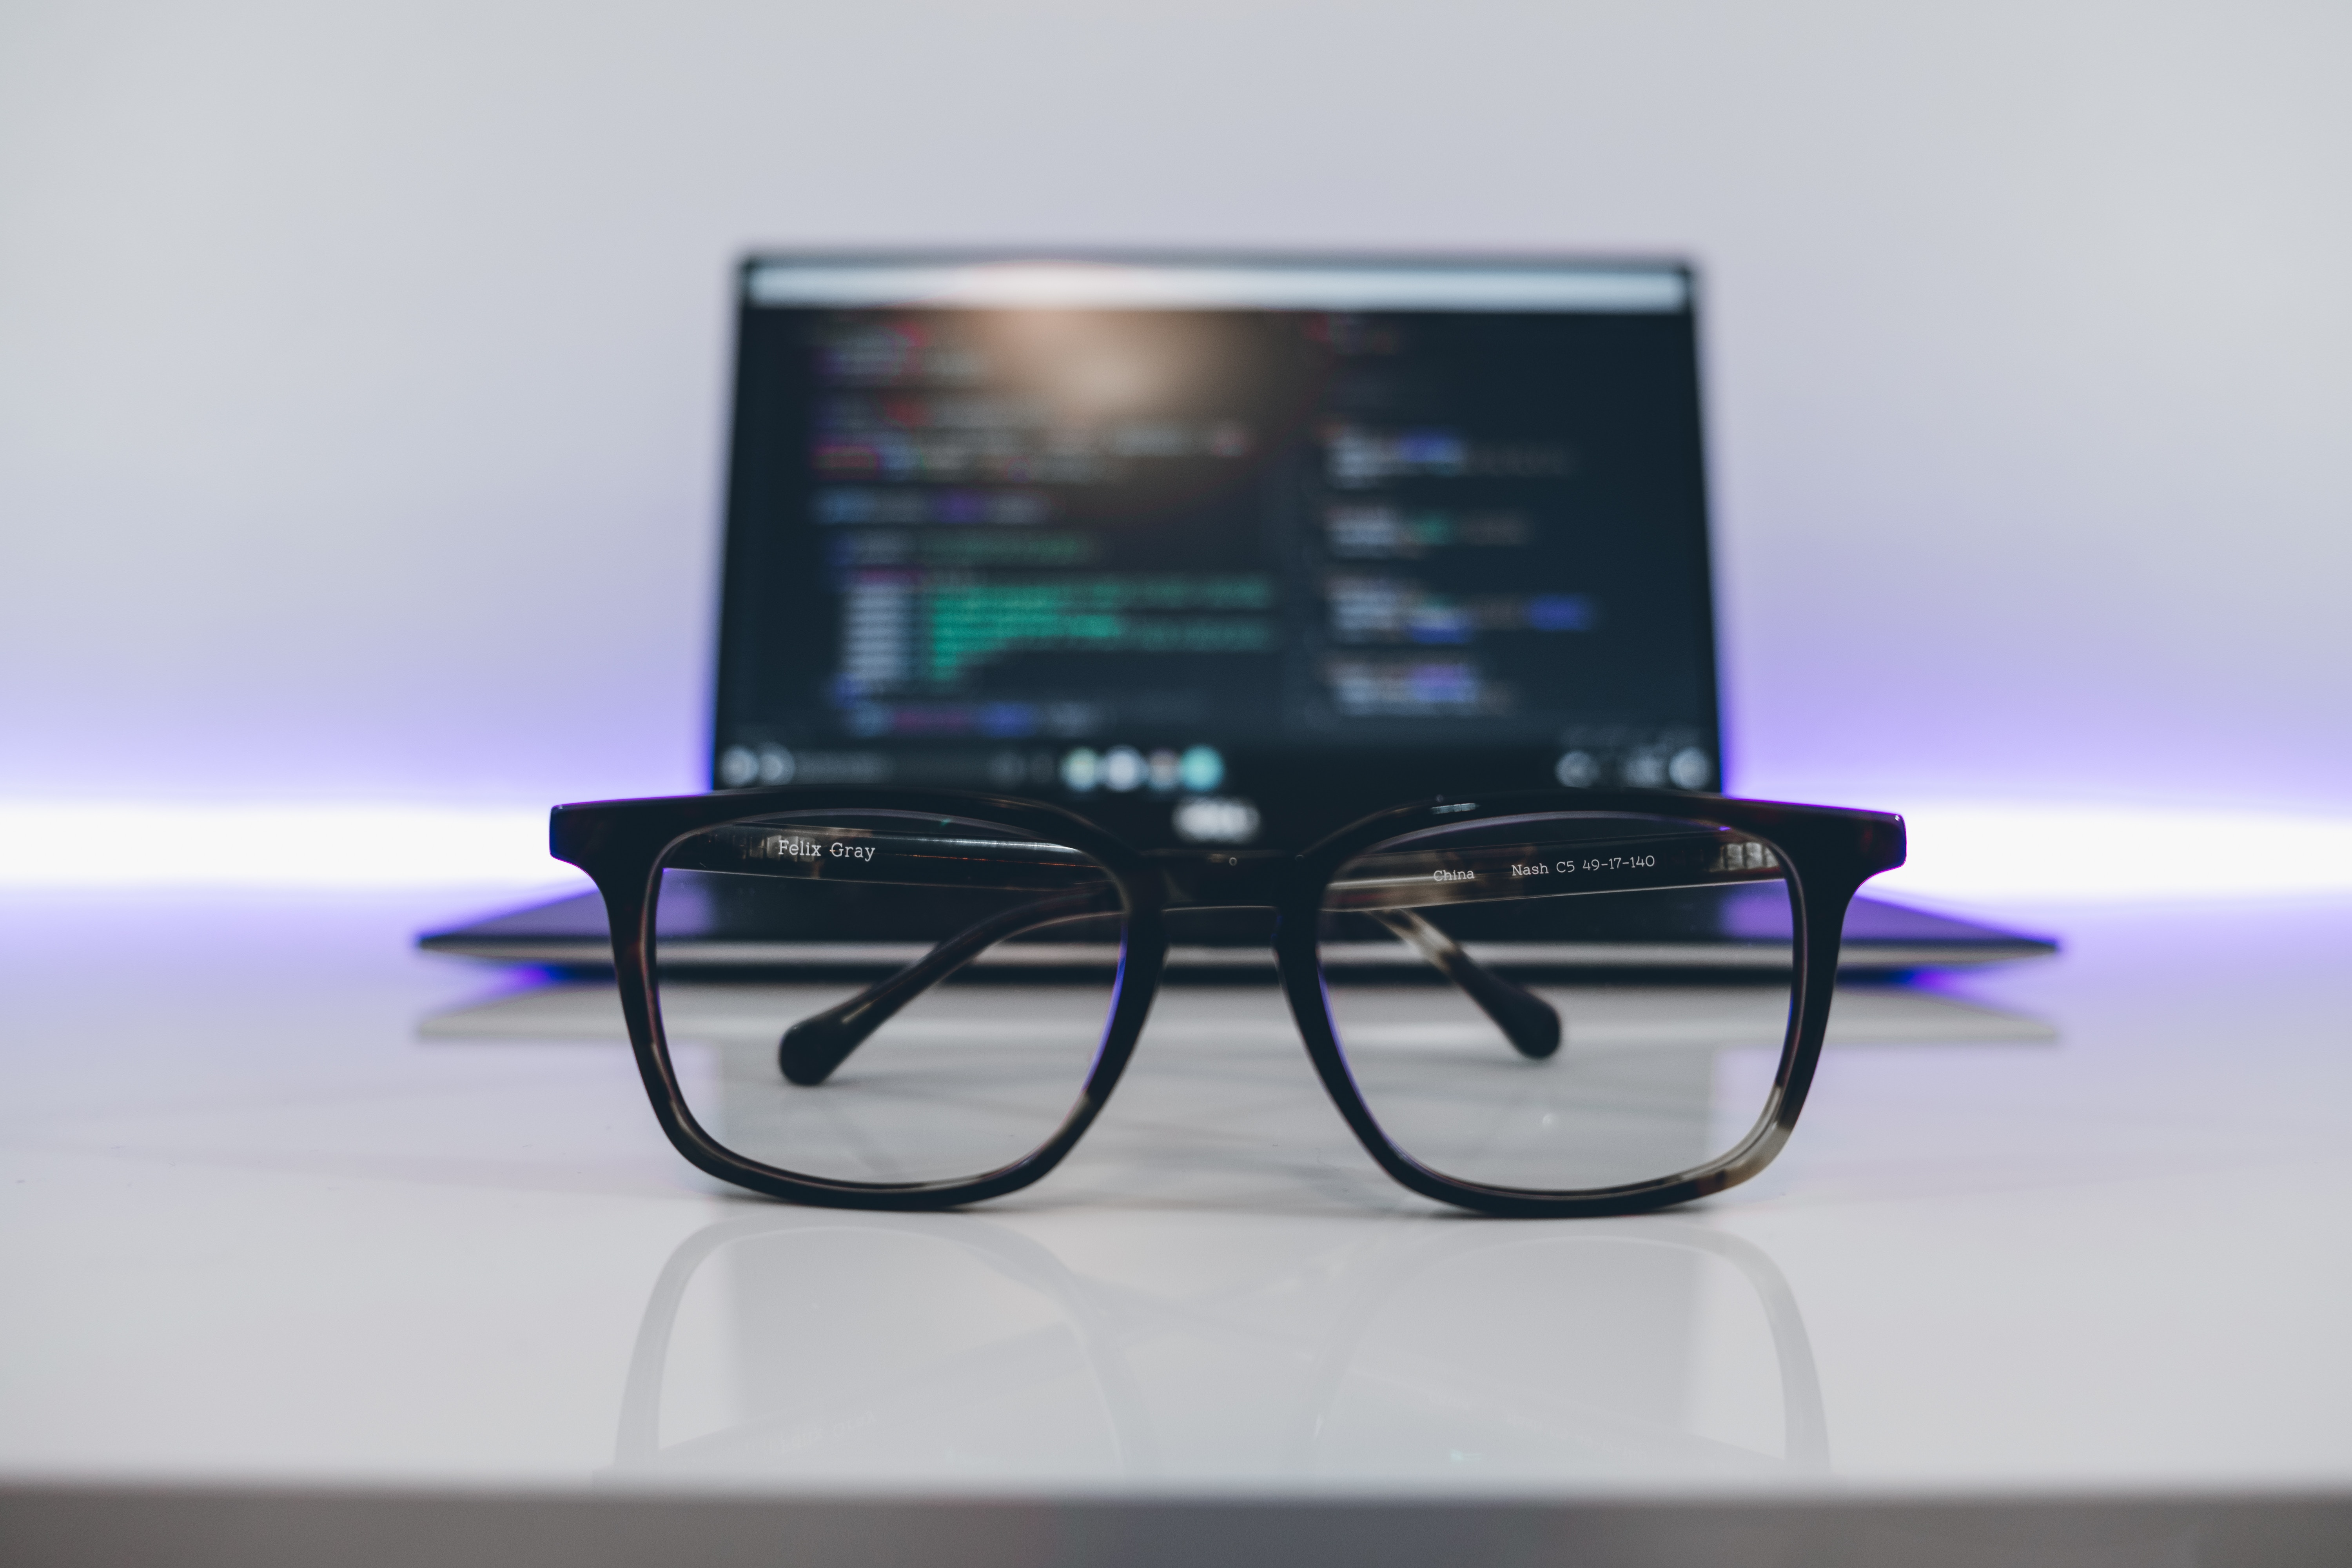 Glasses in front of a laptop screen